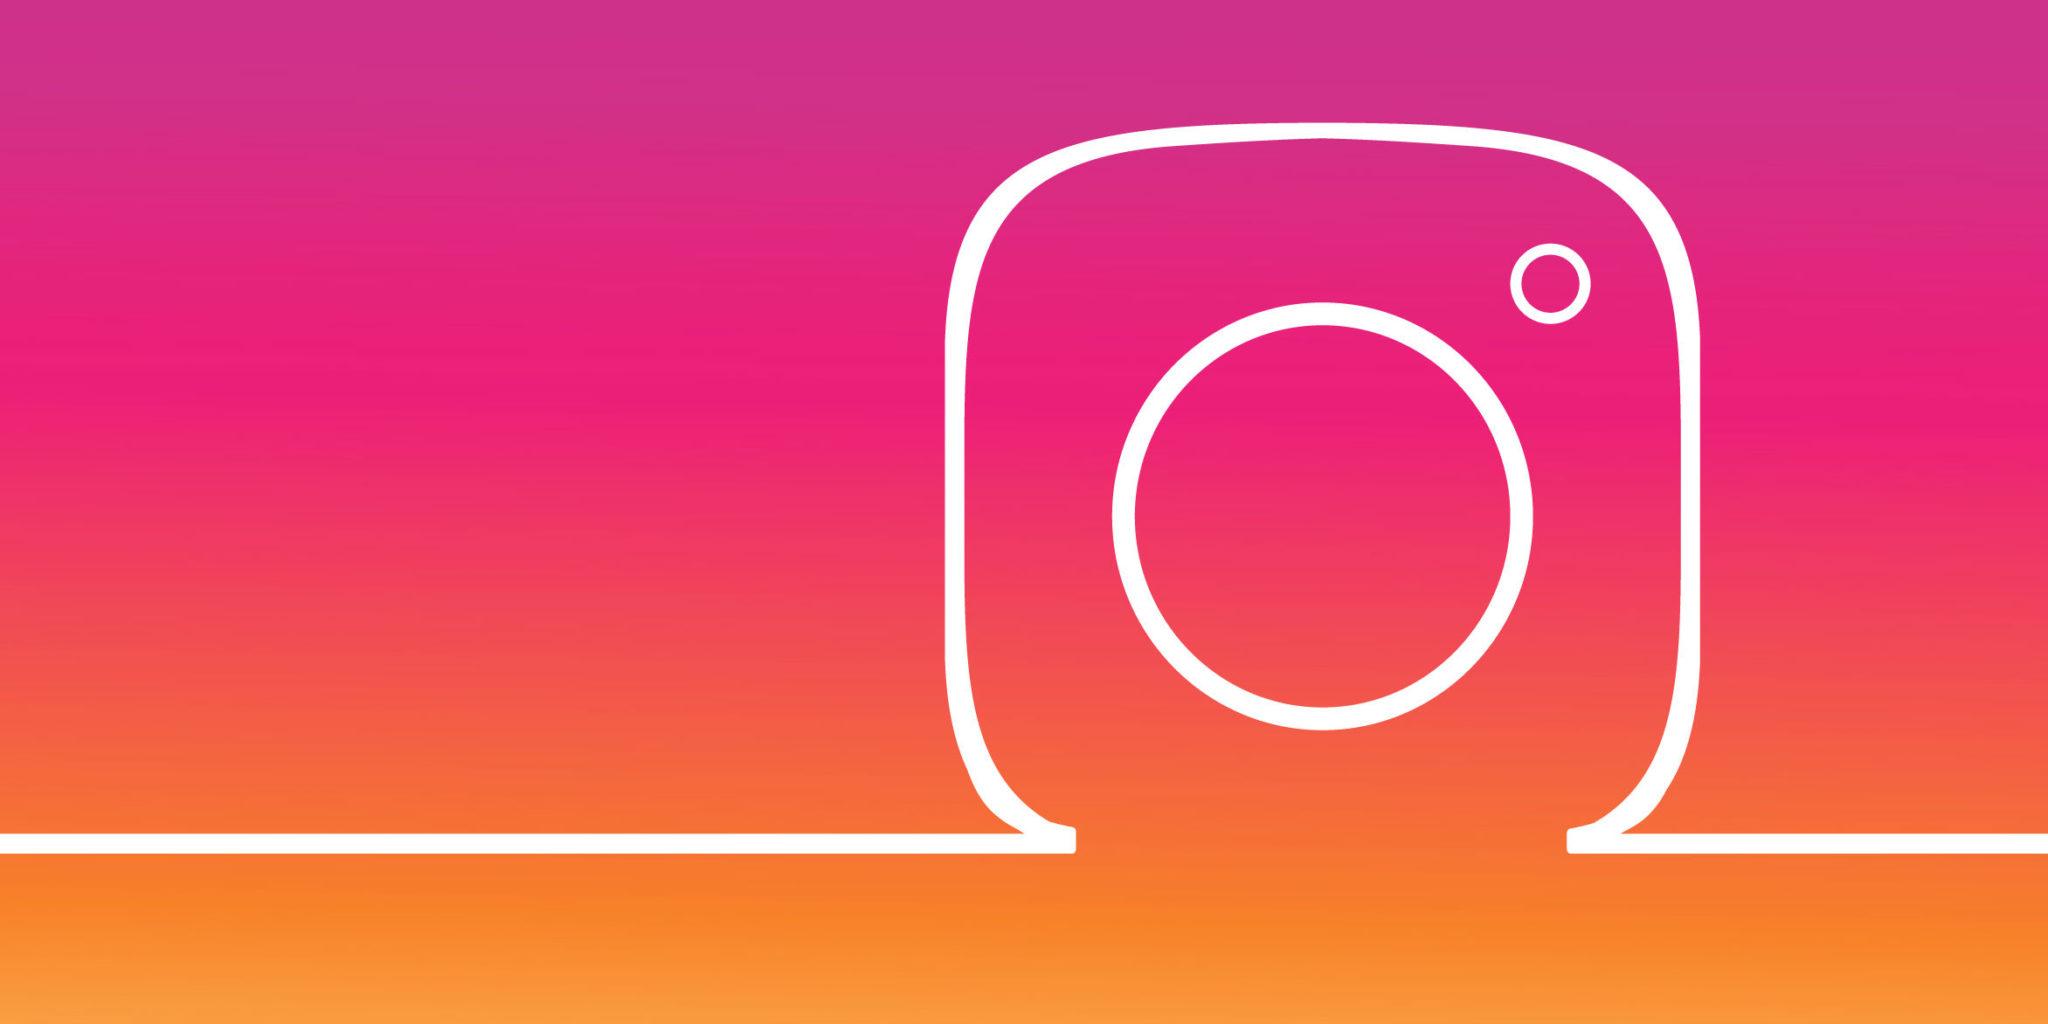 Instagram adds status dots to see when your friends are online